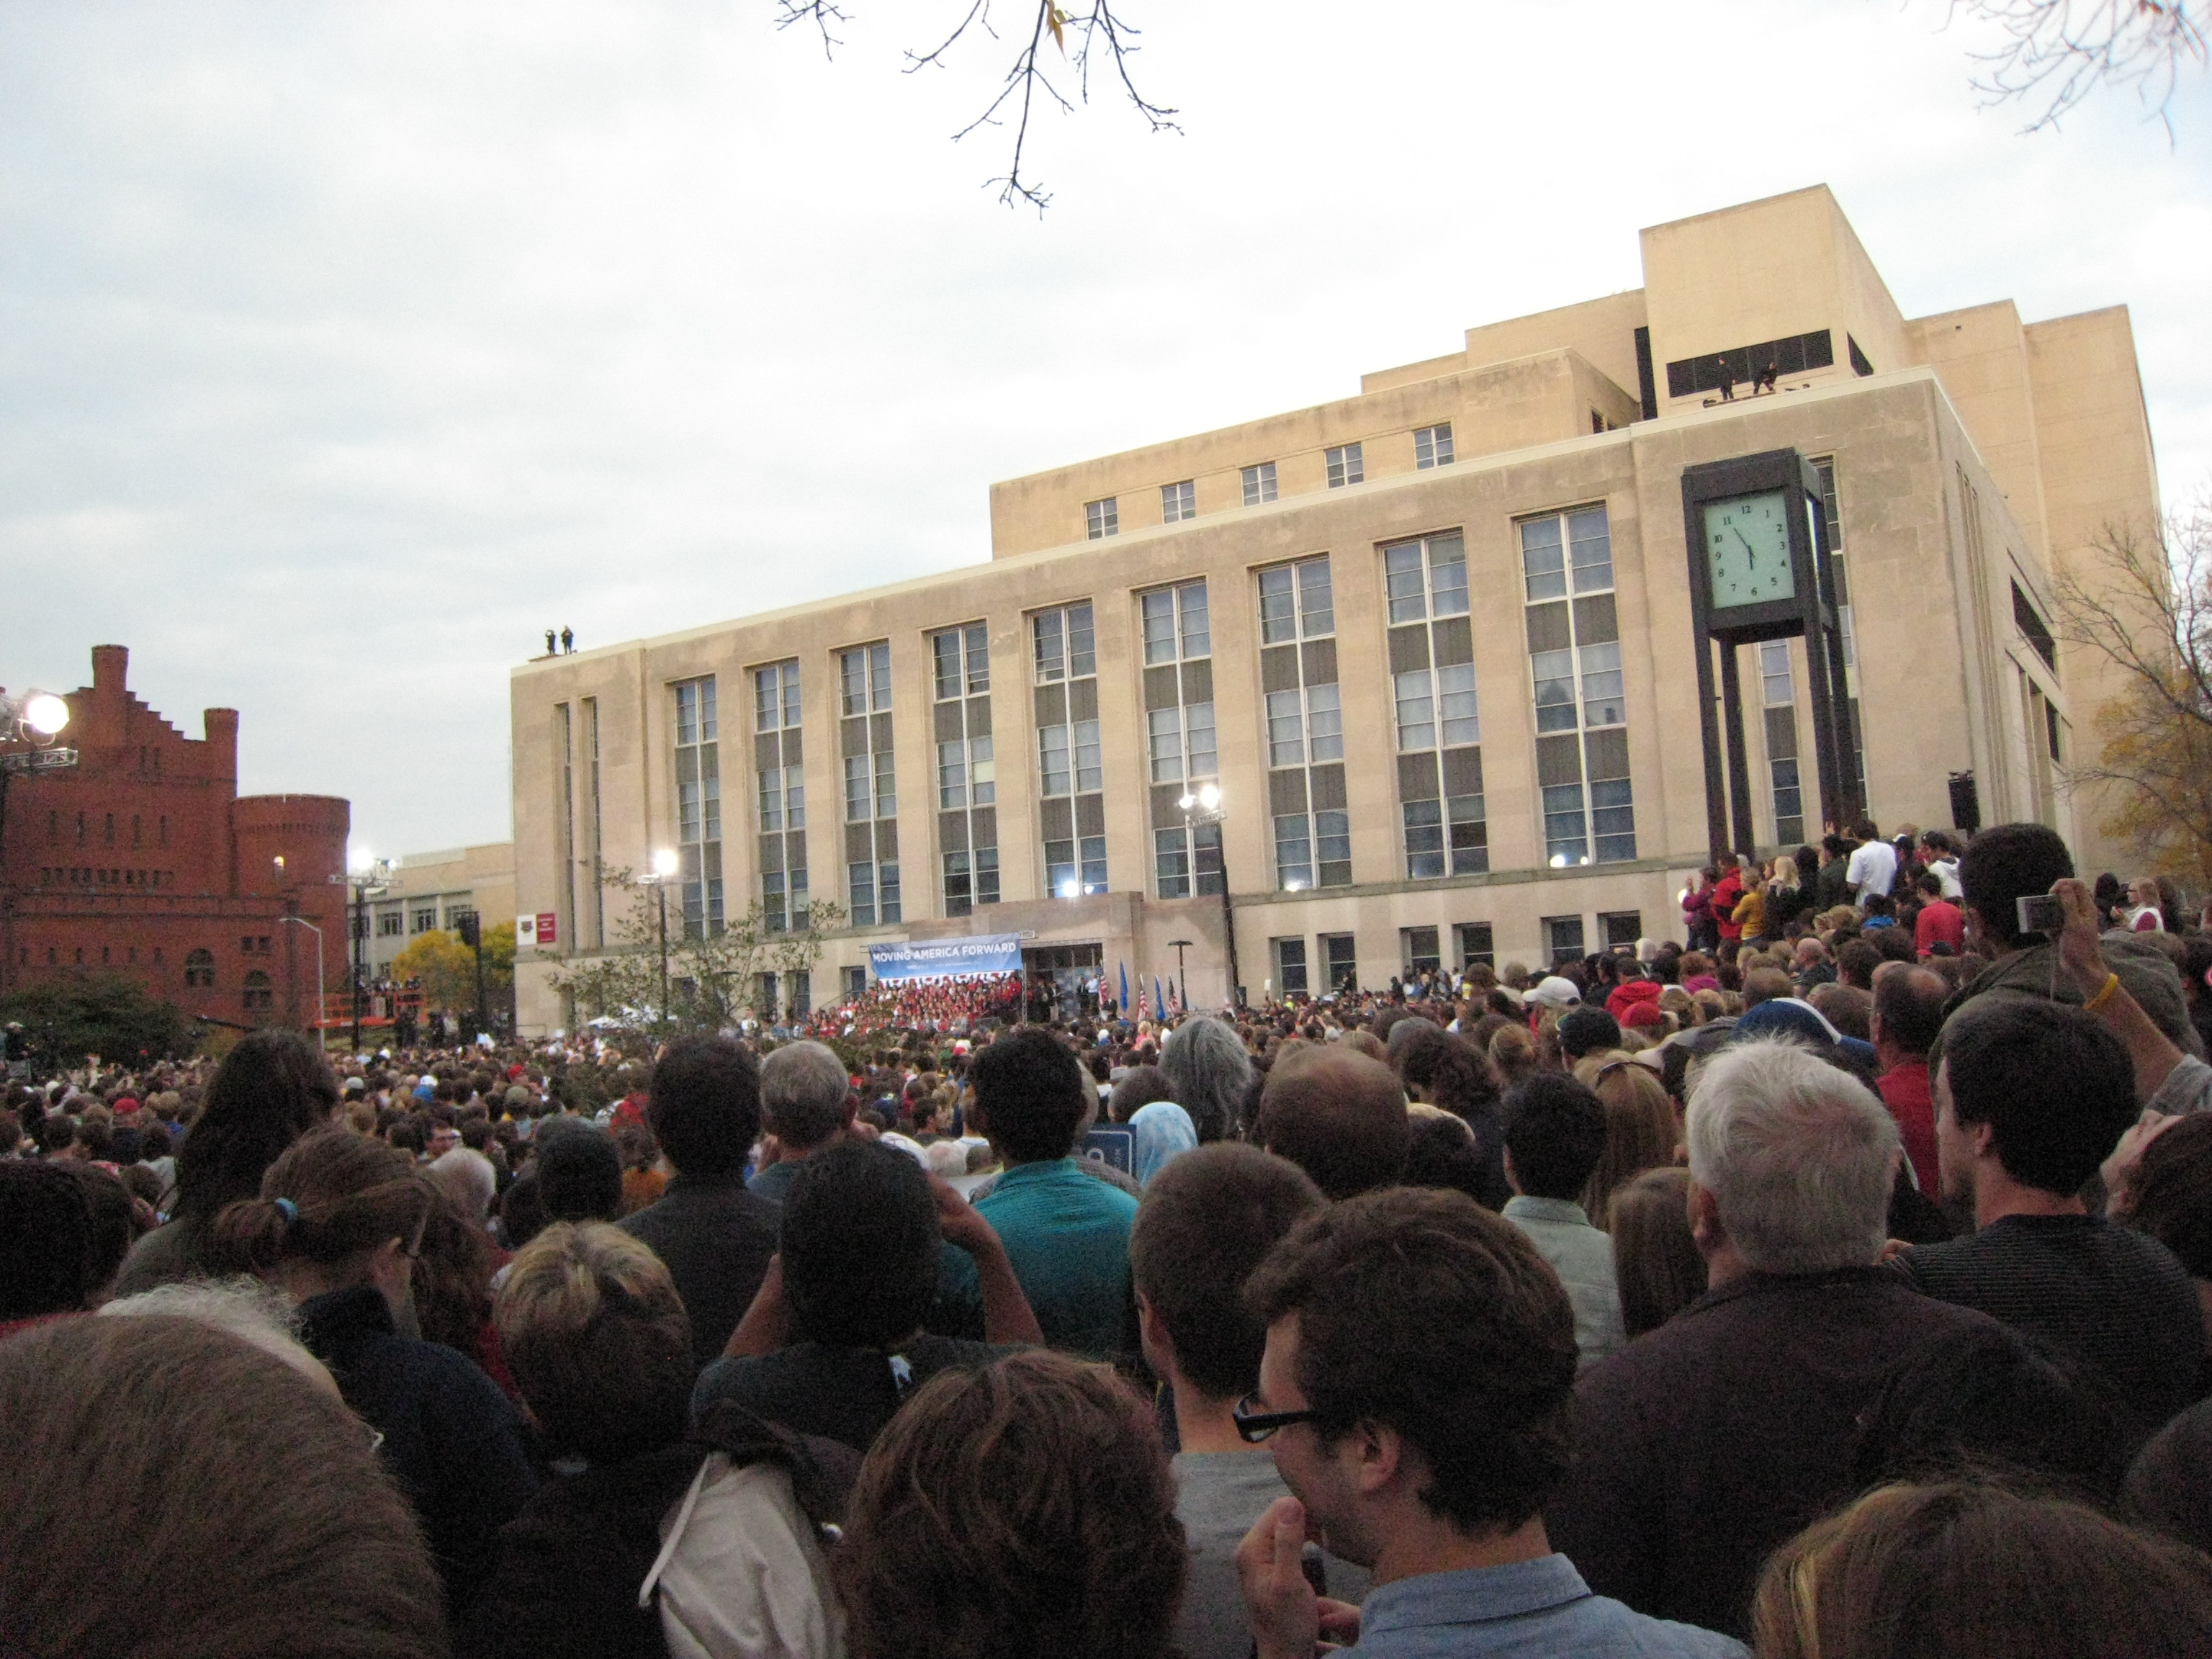 Library Mall, Obama 2010